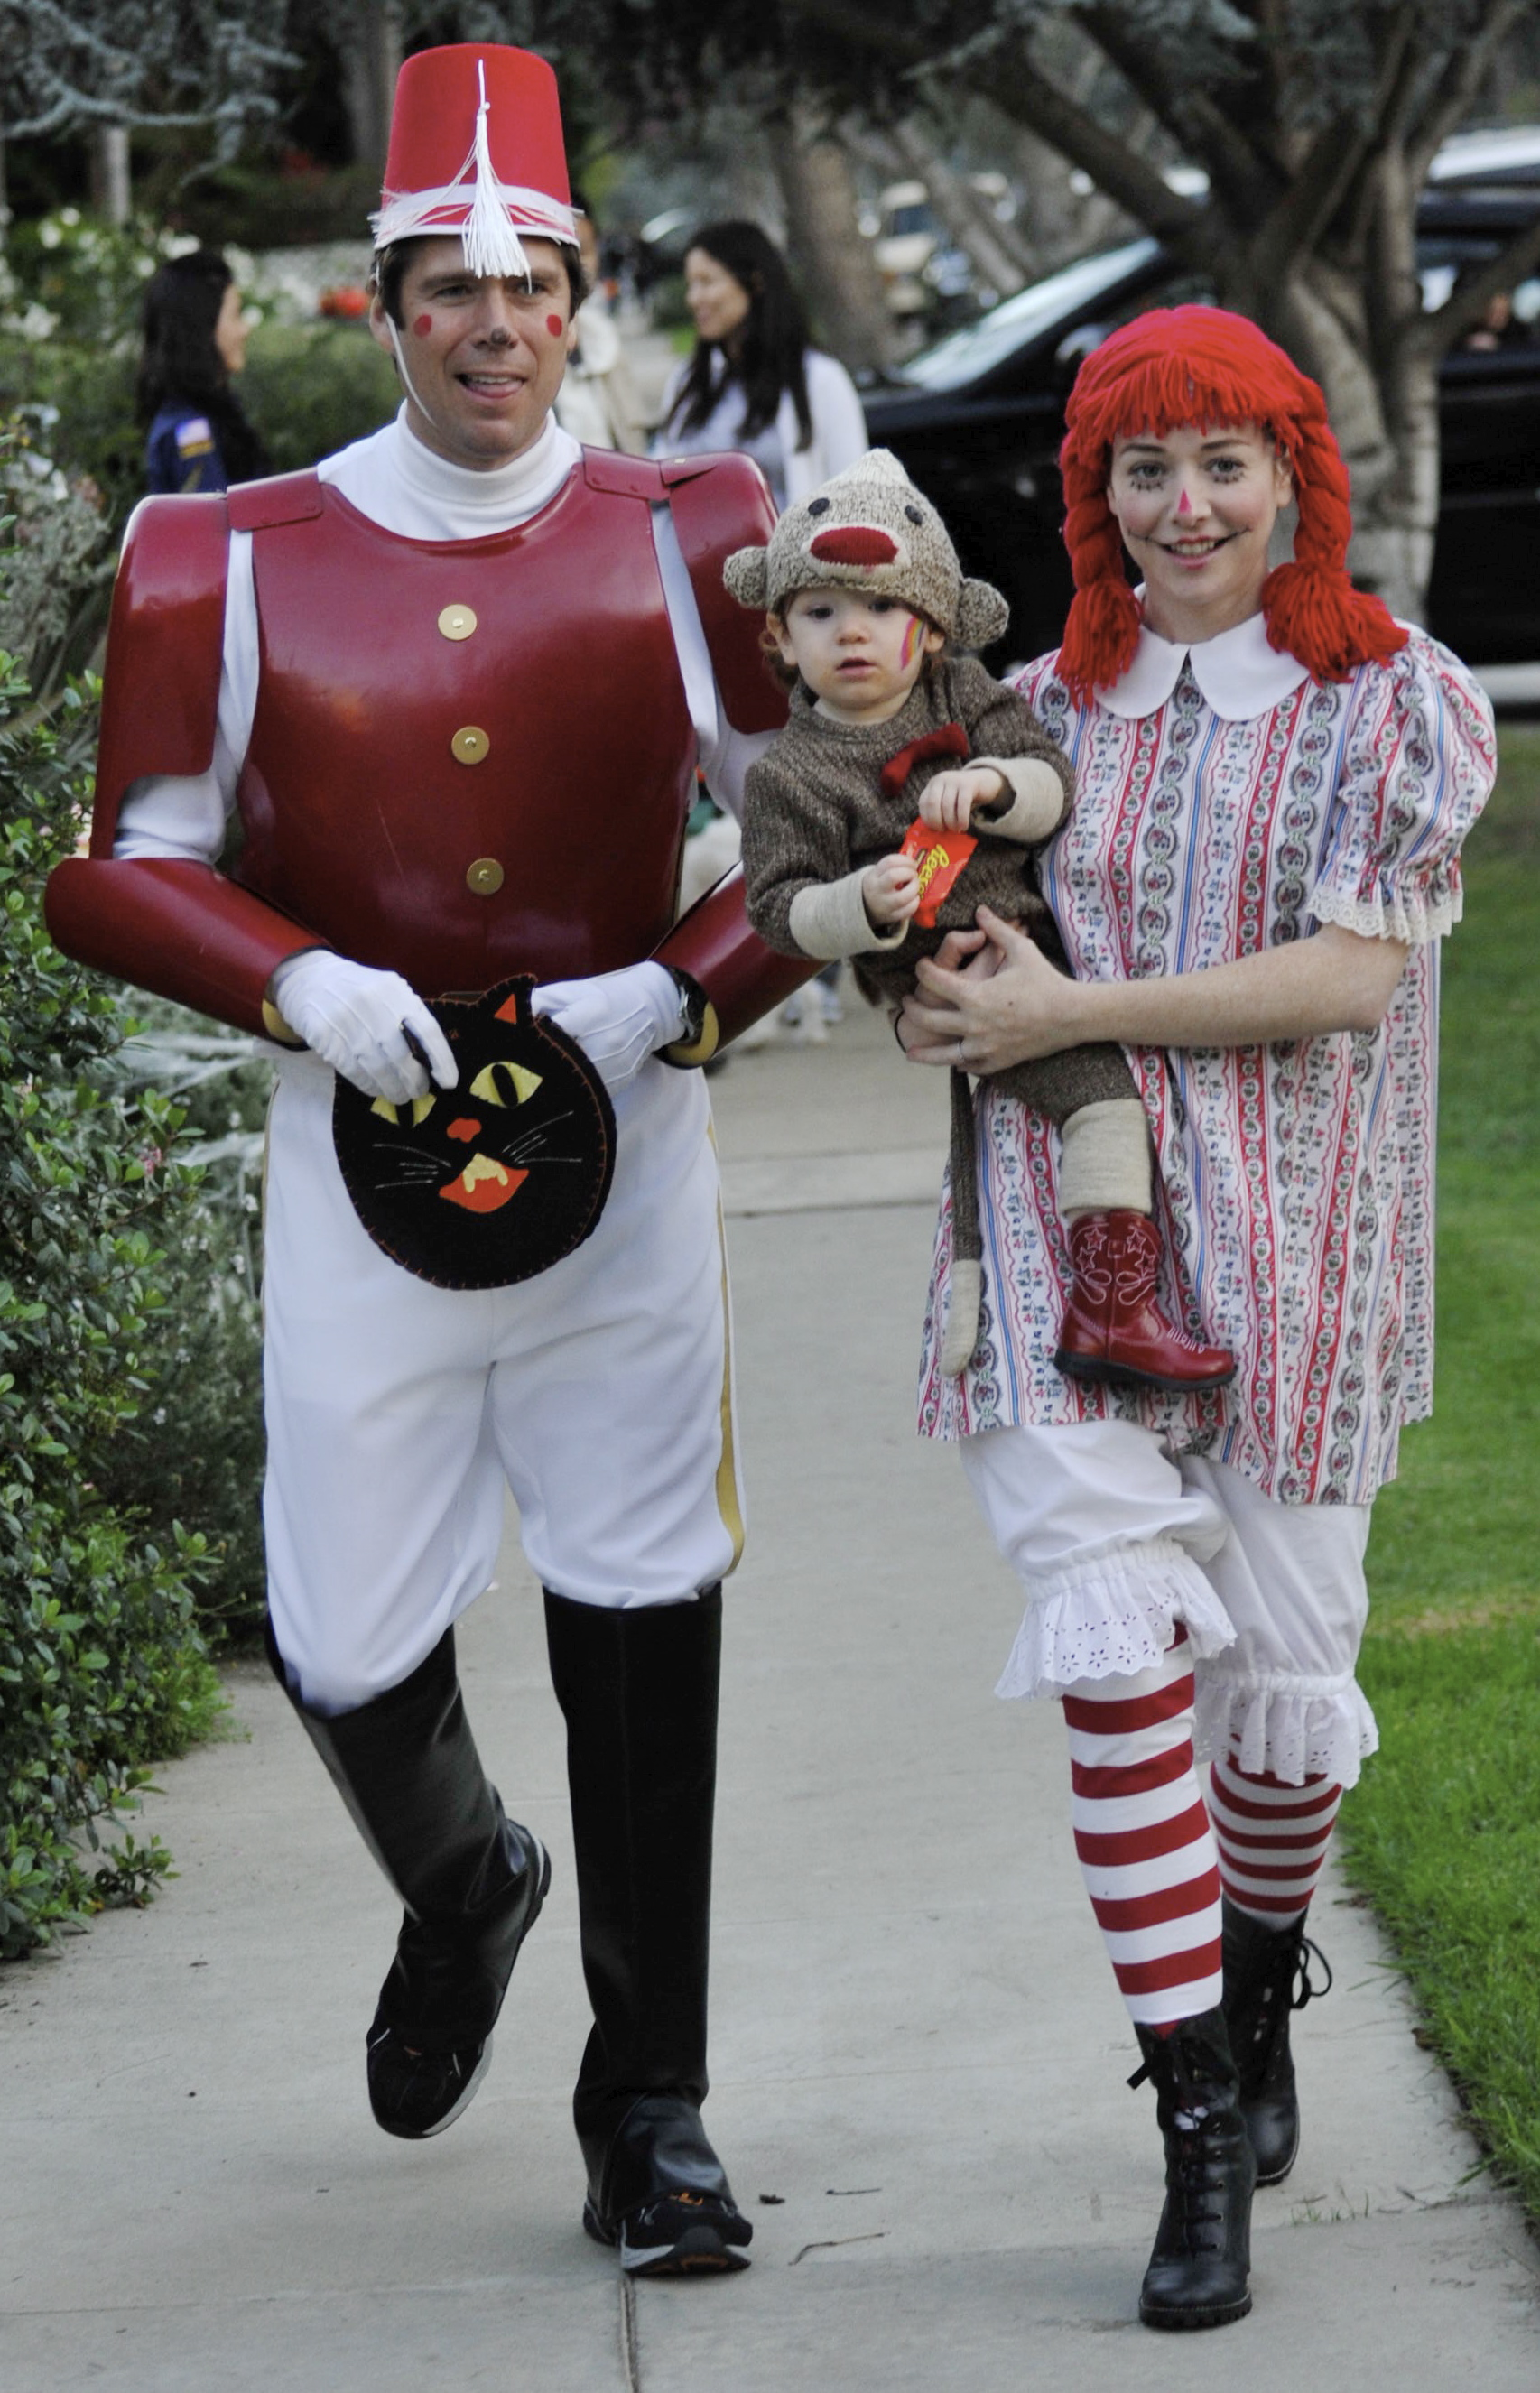 Alyson Hannigan Dressed As Raggedy Anne And Her Husband